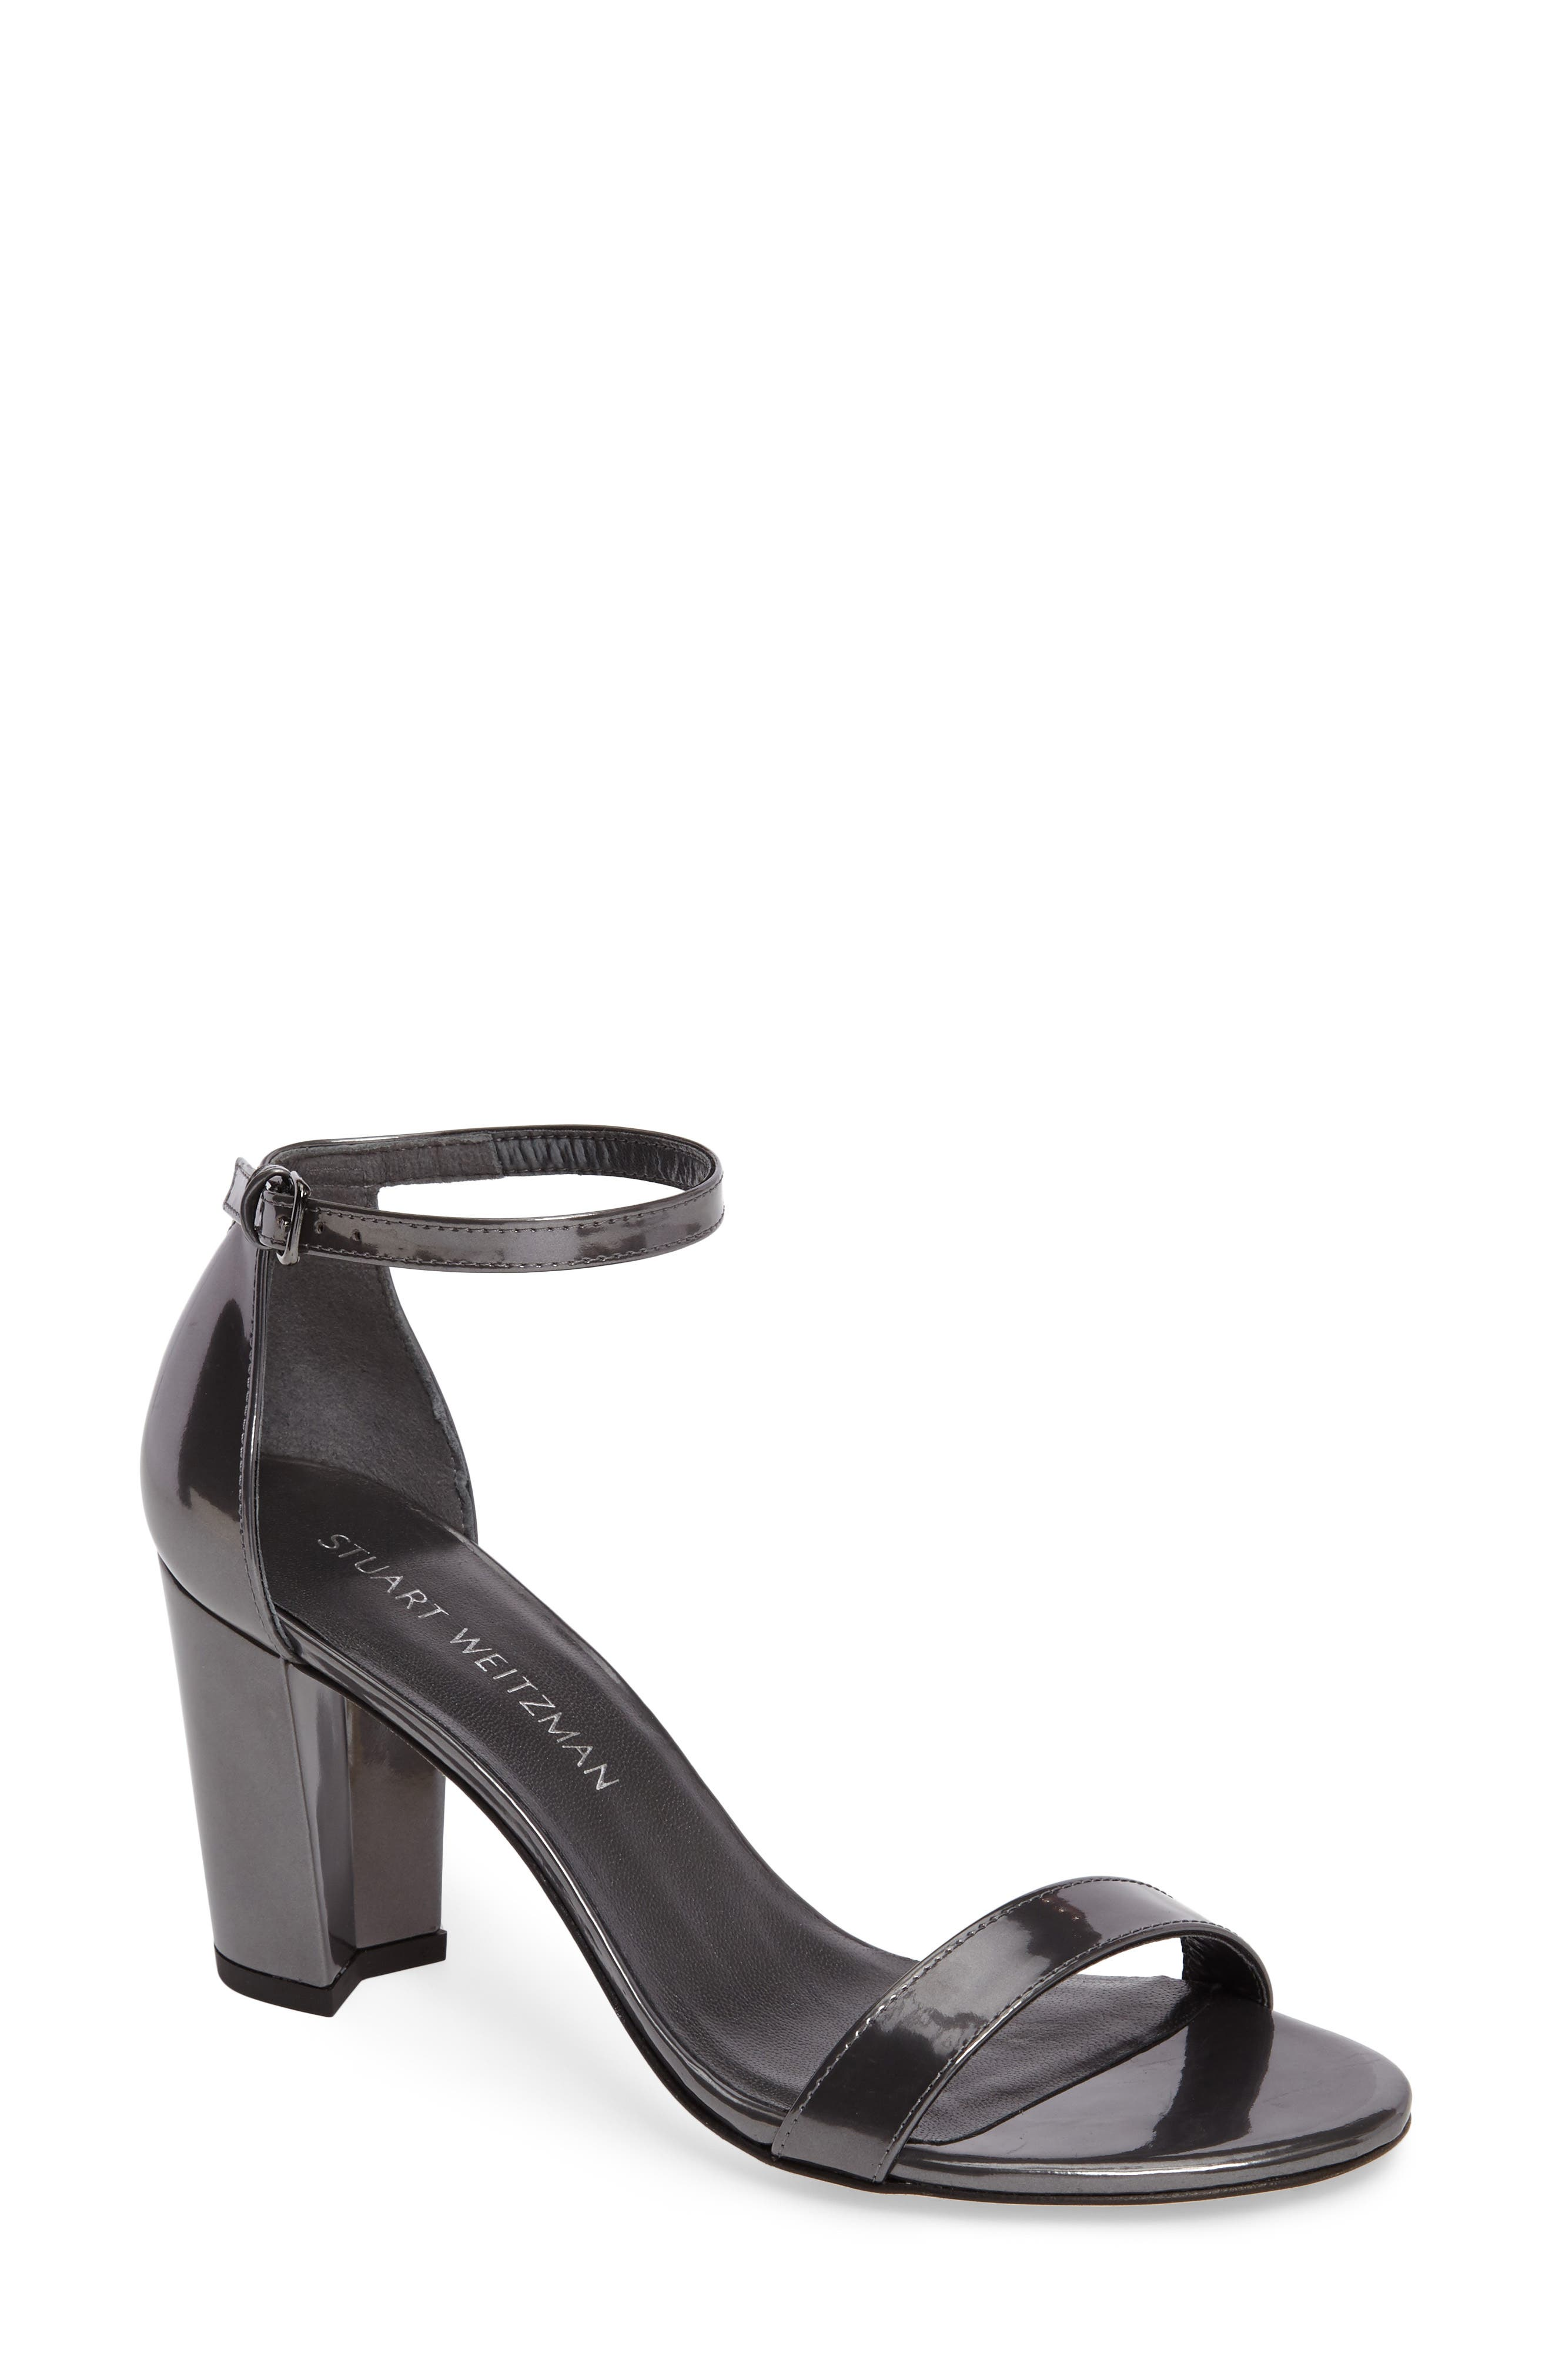 NearlyNude Ankle Strap Sandal,                             Main thumbnail 12, color,